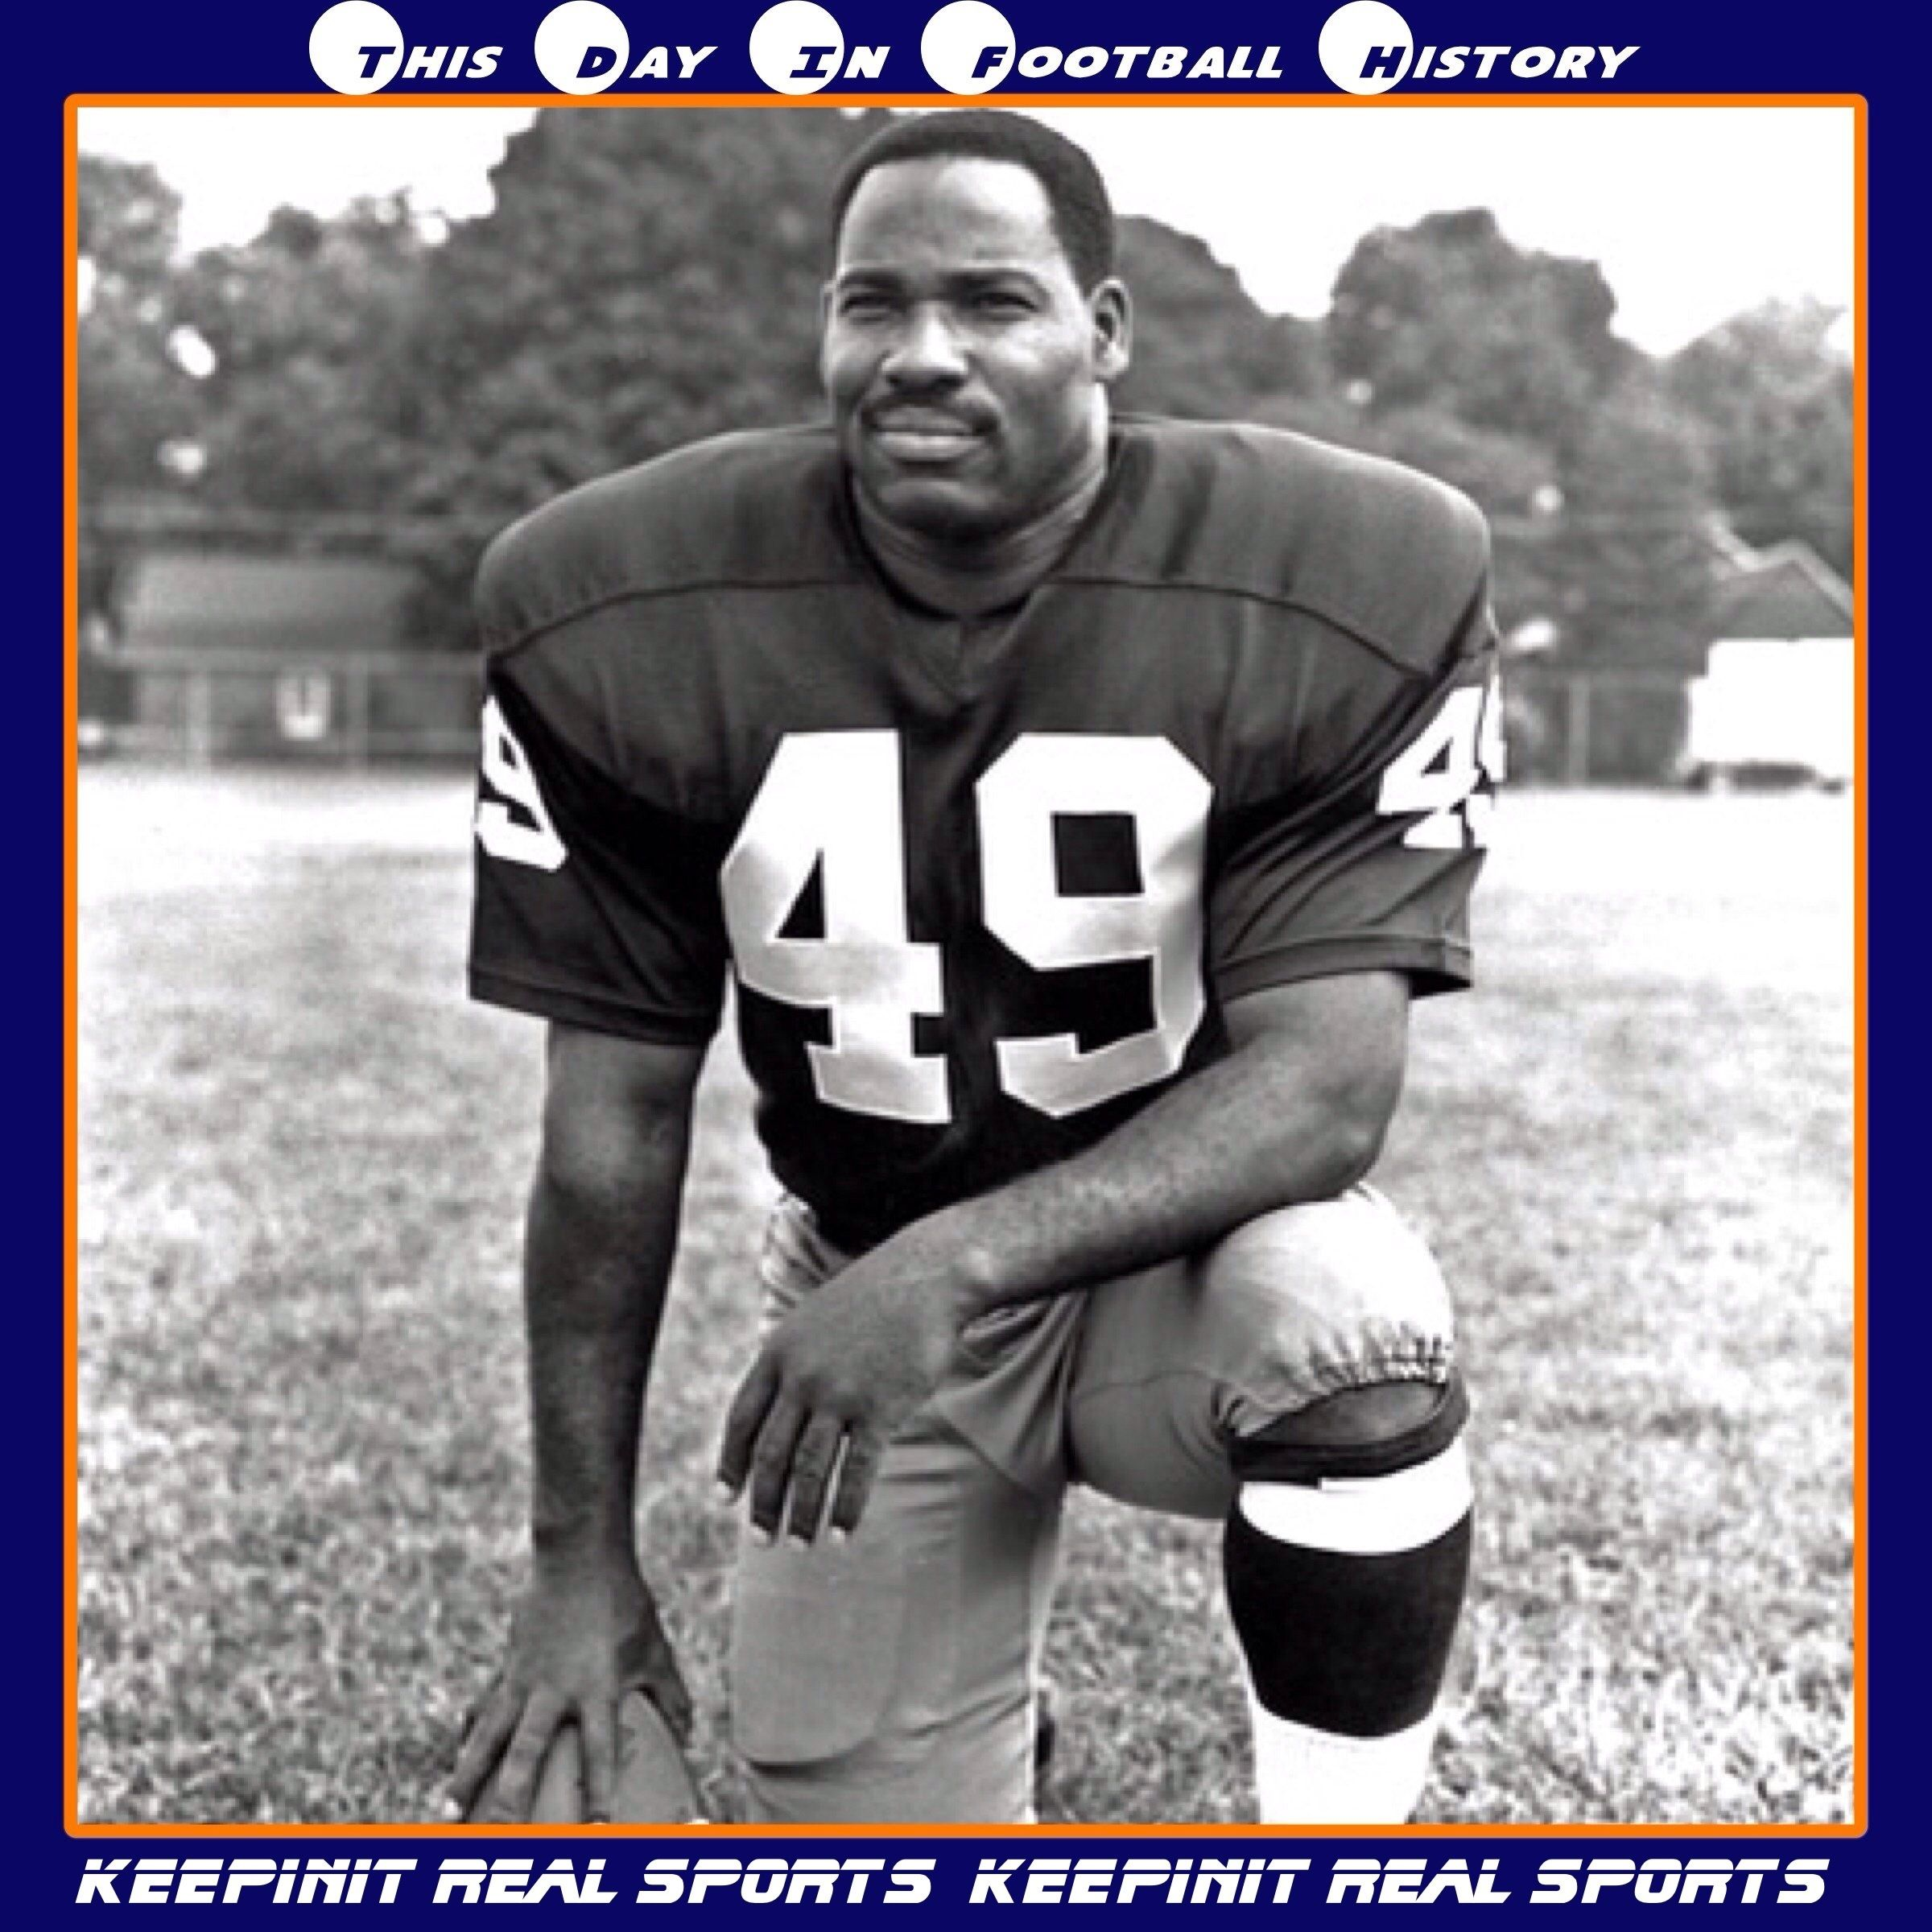 This Day In Football History November 15,1959 Cleveland